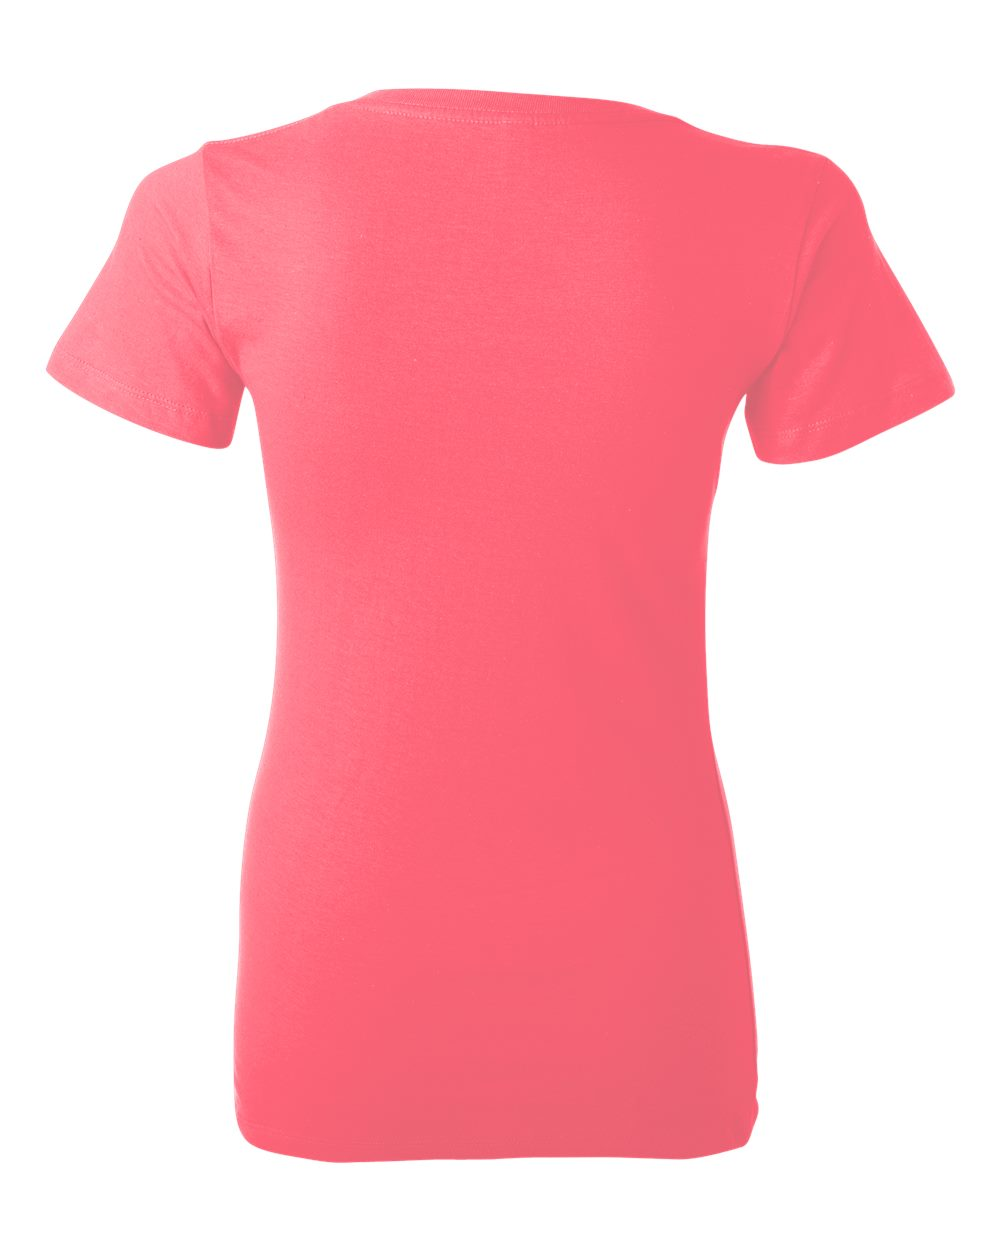 Bella-Canvas-Women-039-s-Jersey-Short-Sleeve-Deep-V-Neck-T-Shirt-B6035-S-2XL thumbnail 22